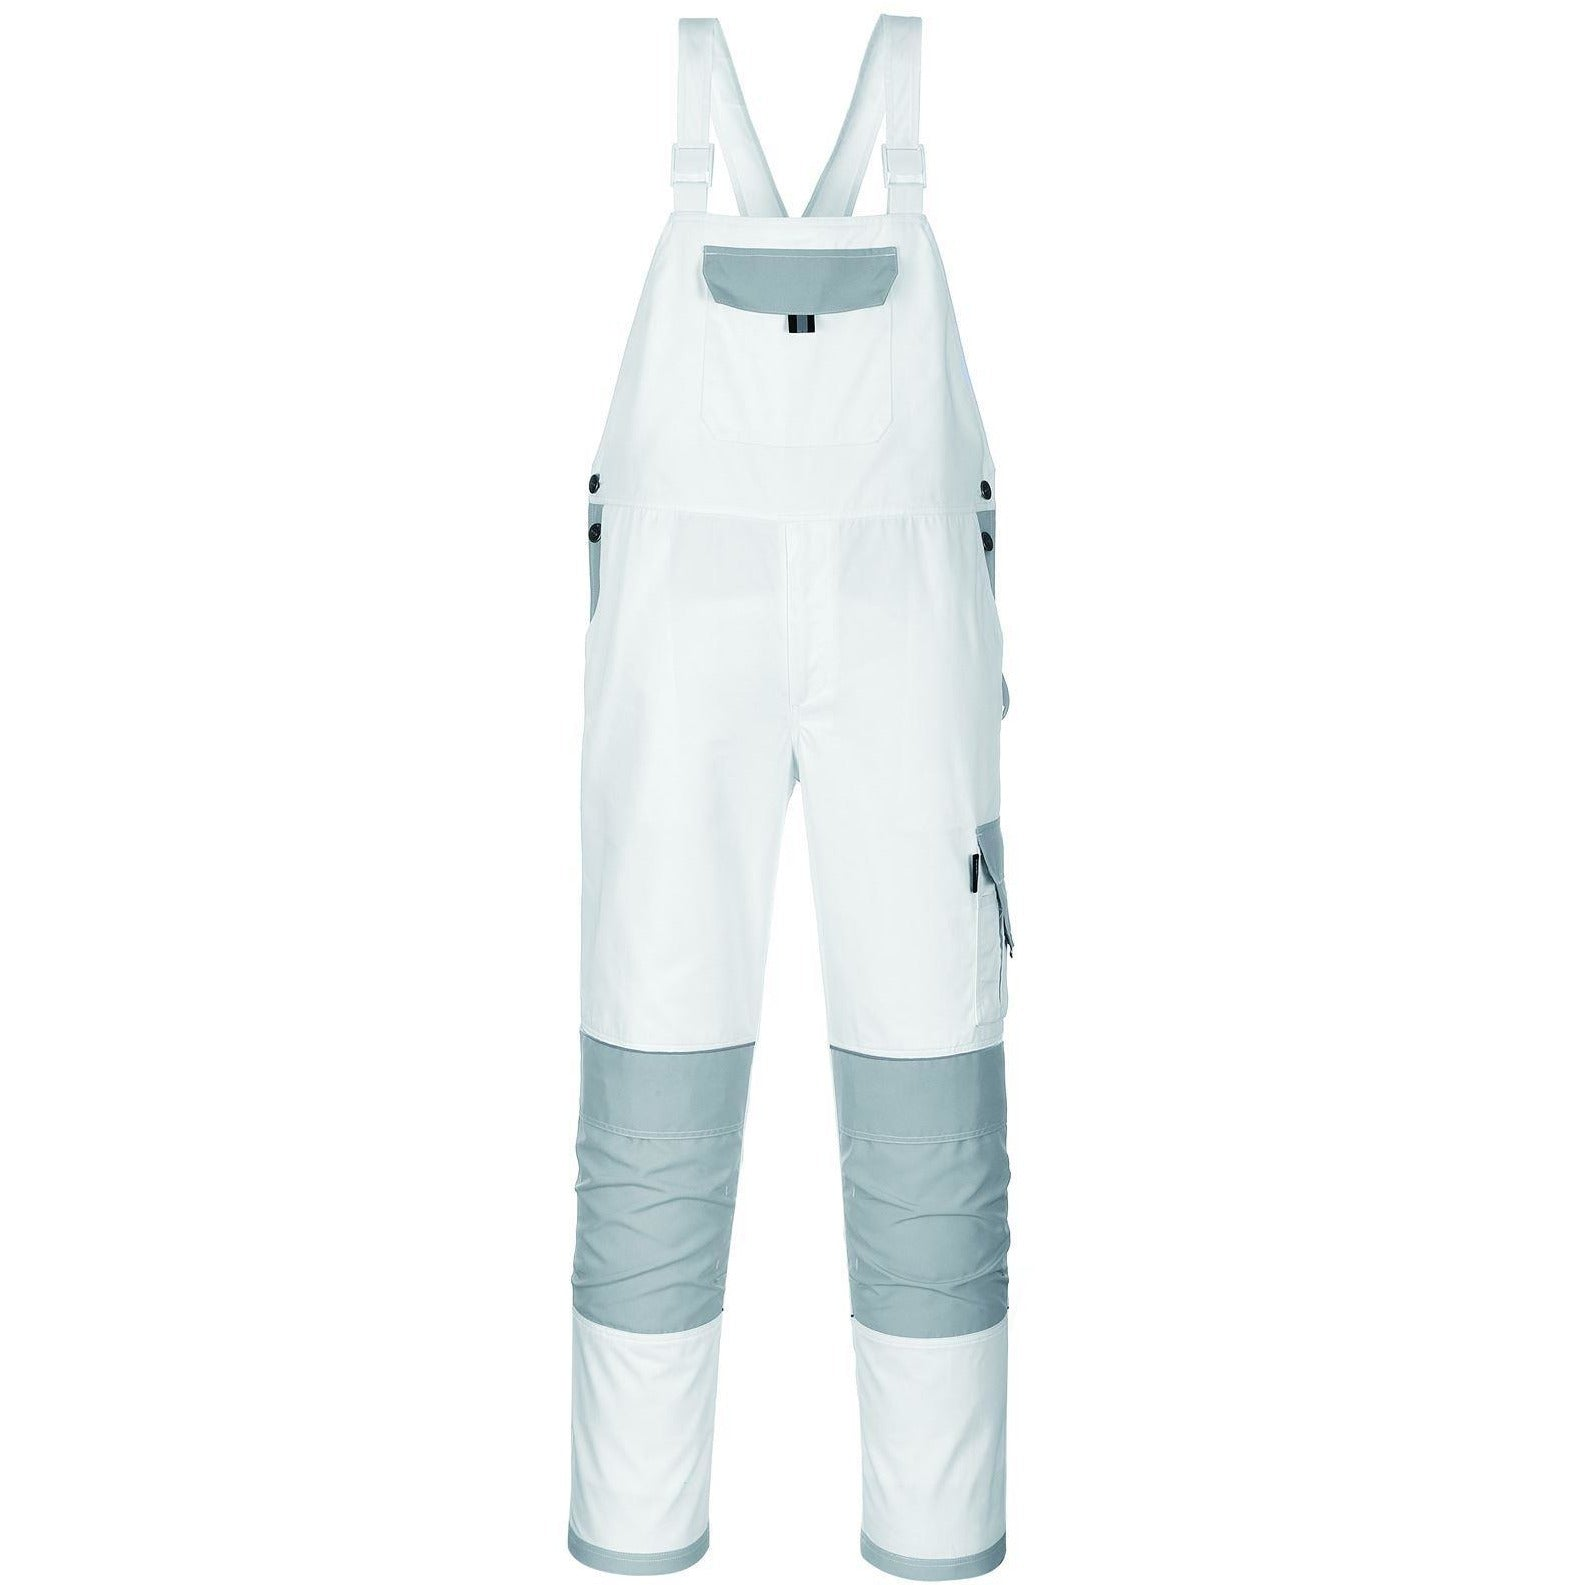 Portwest Craft Bib & Brace KS56